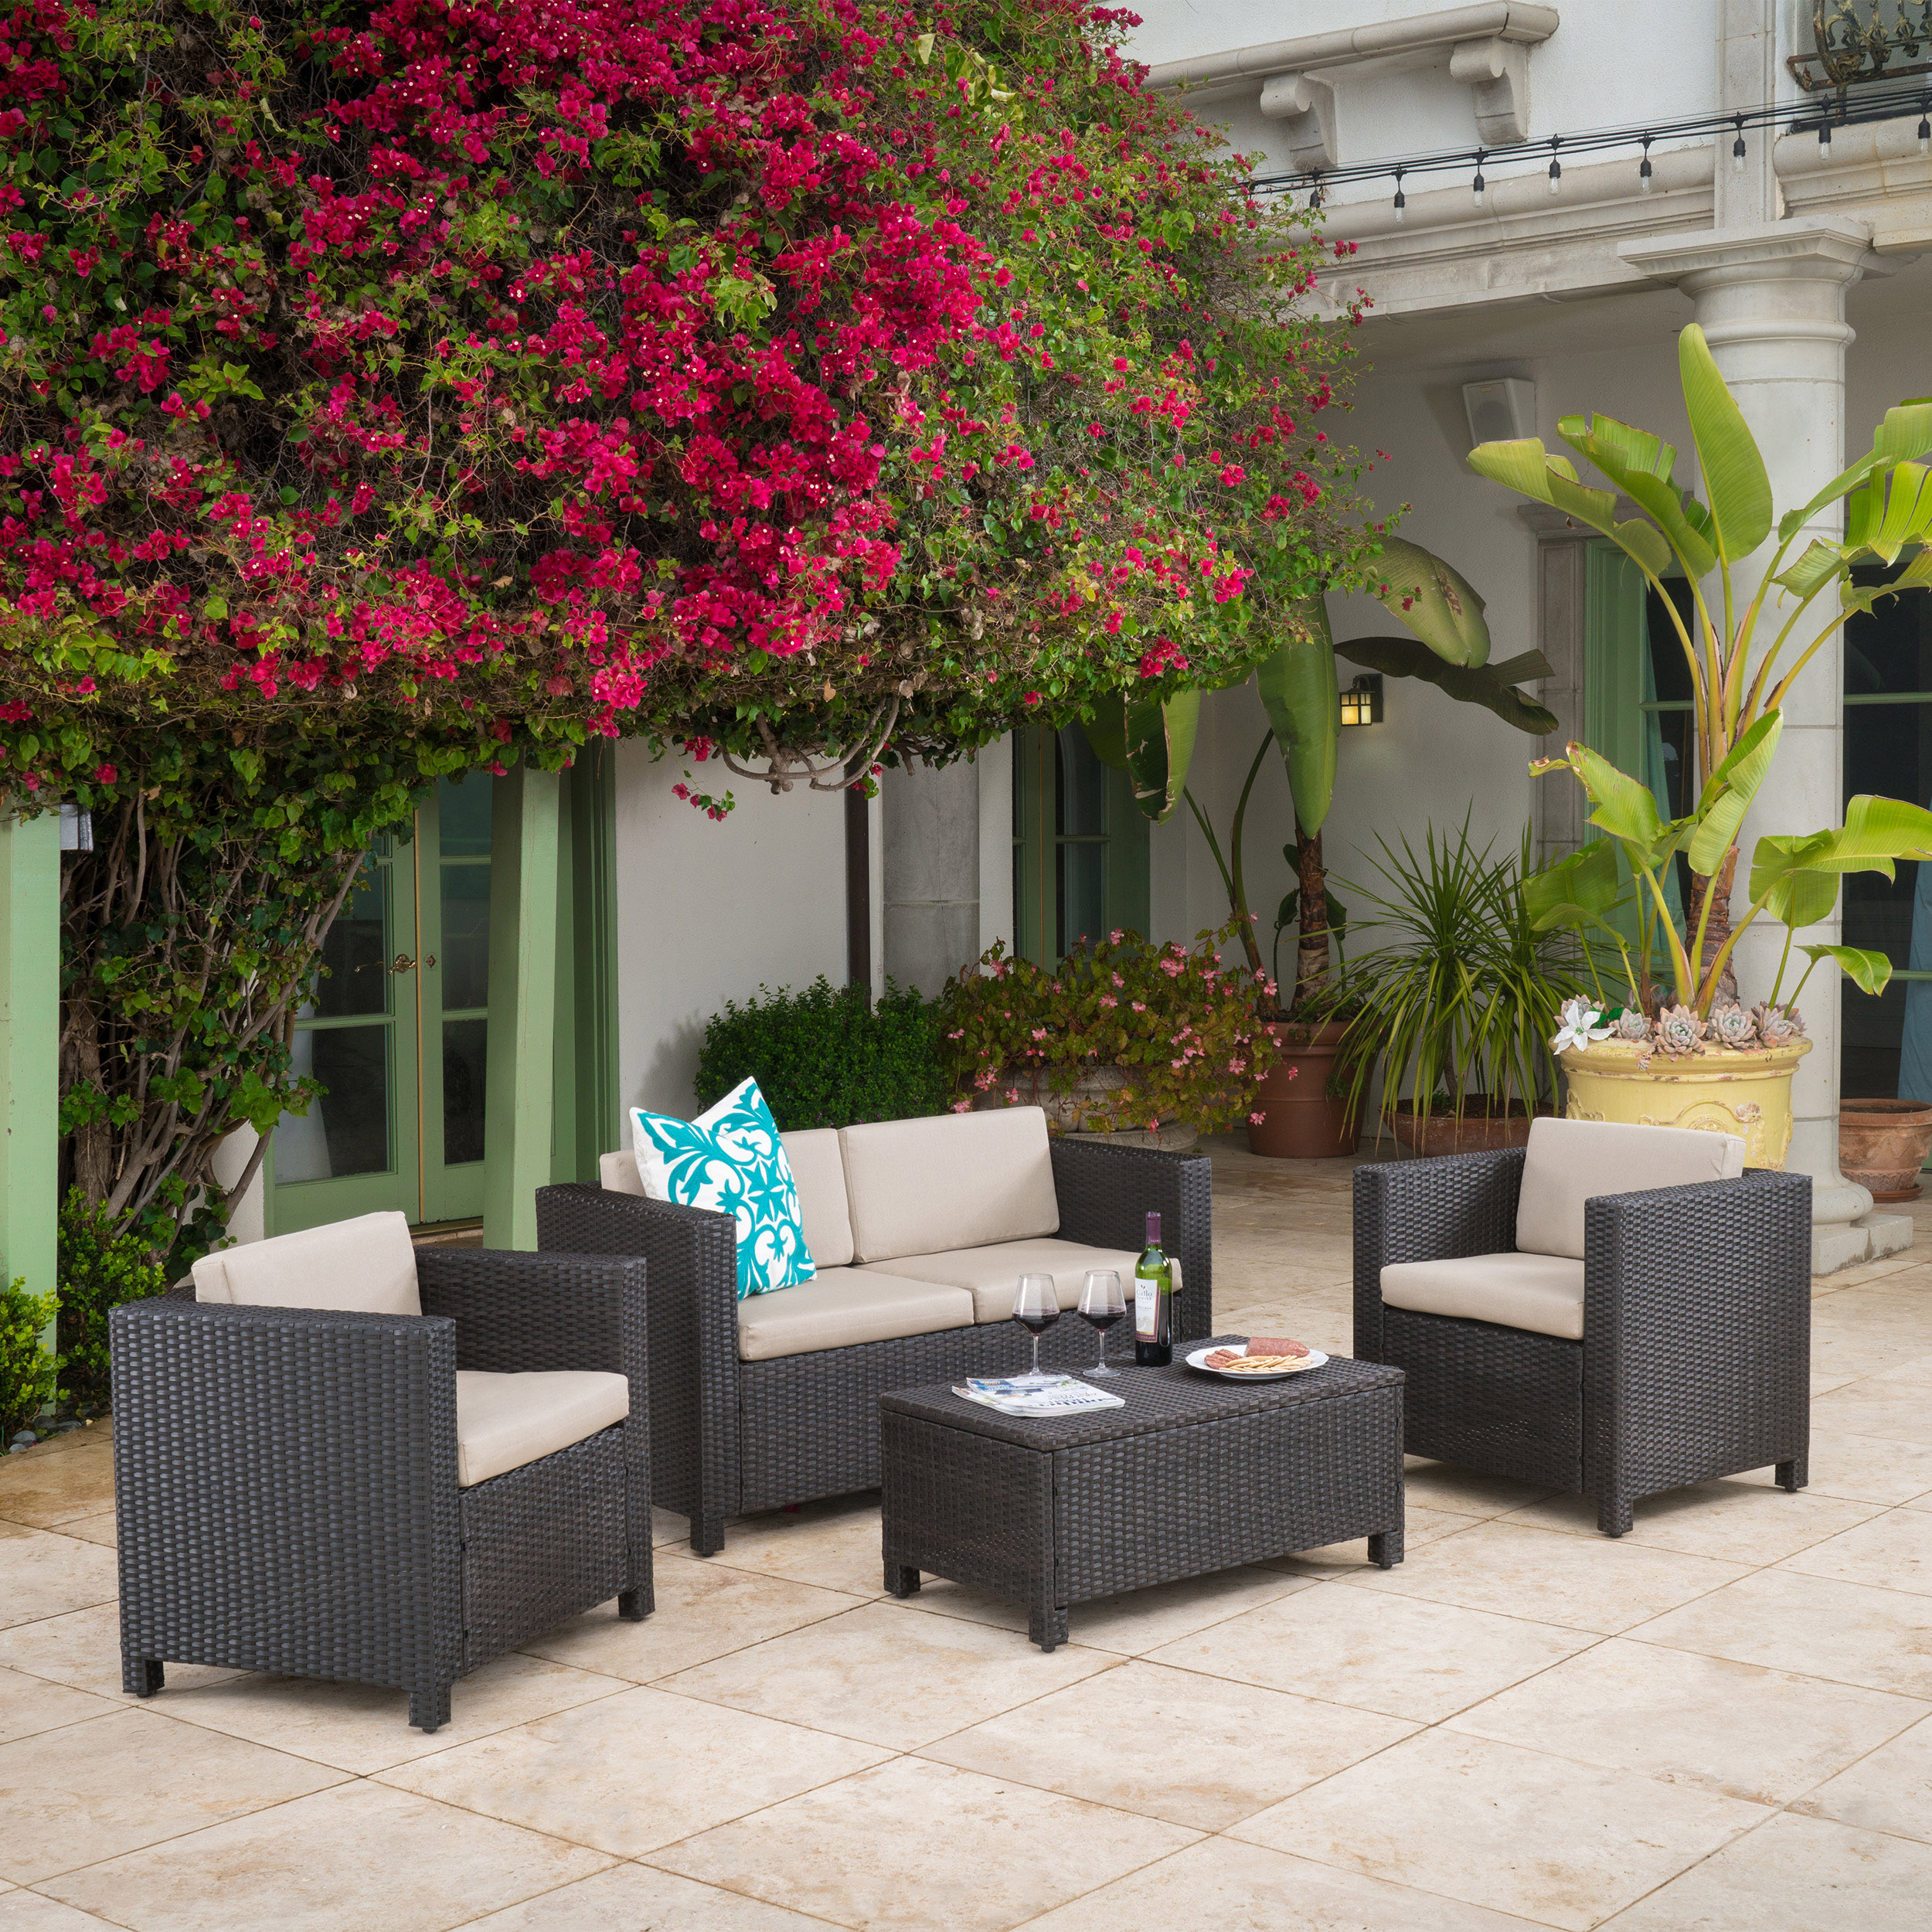 Raleigh Outdoor Wicker 4 piece Sofa Set, Multiple Colors